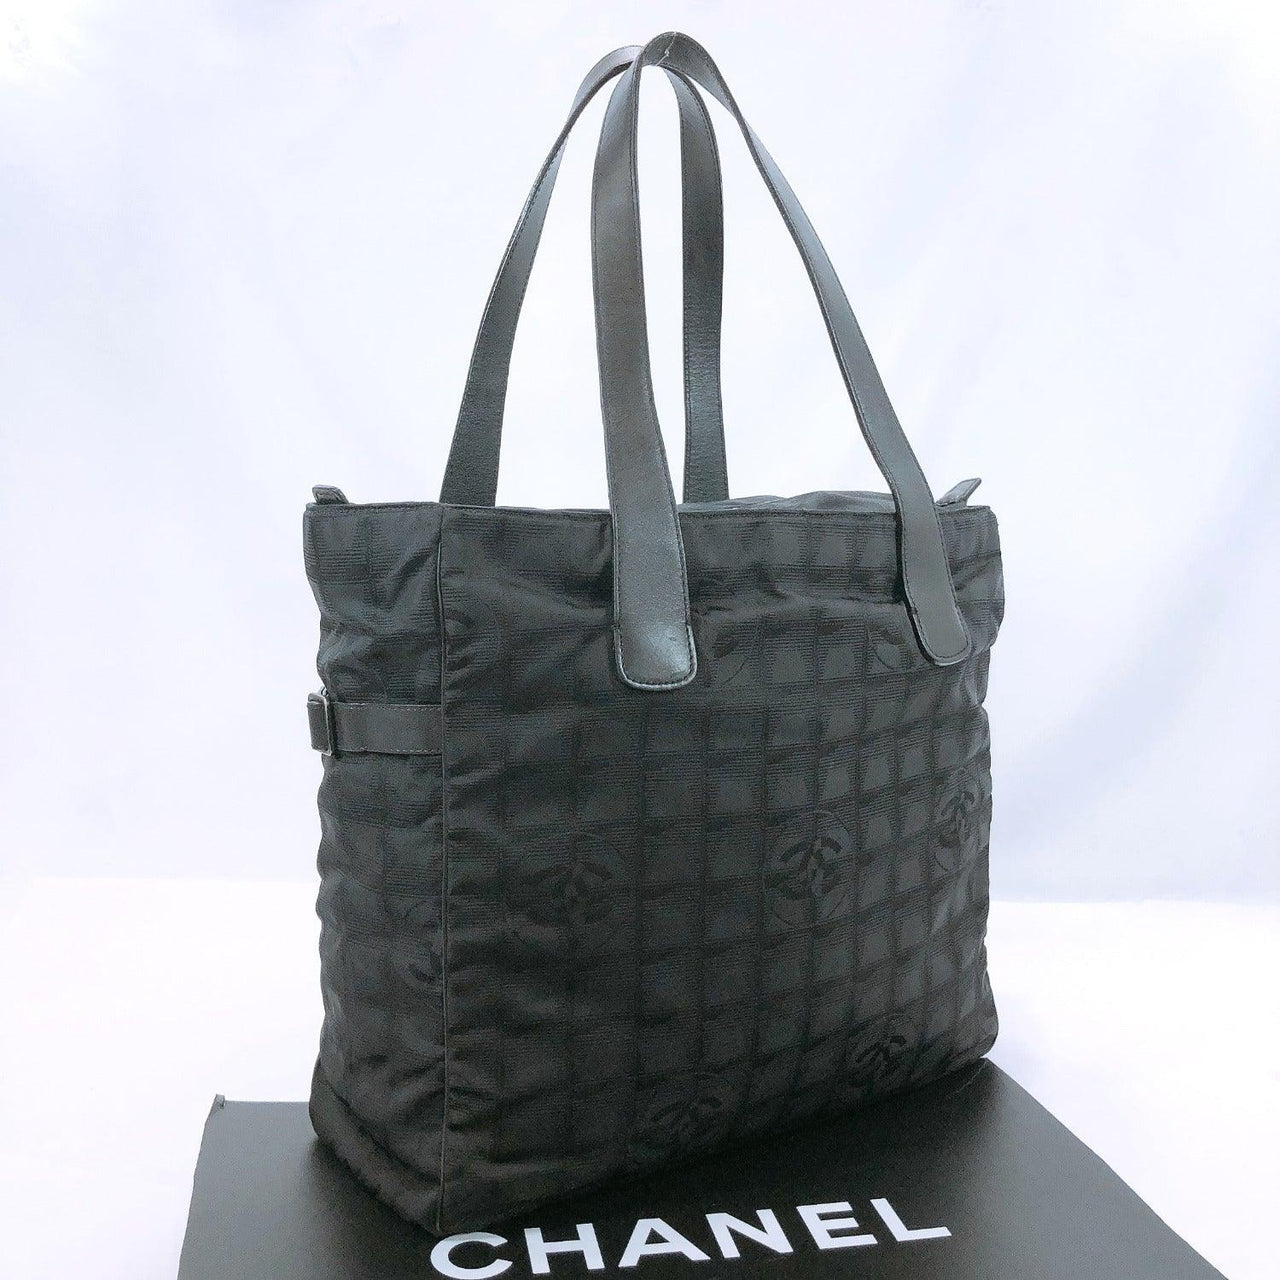 CHANEL Tote Bag New travel line Tote GM Nylon black Women Used